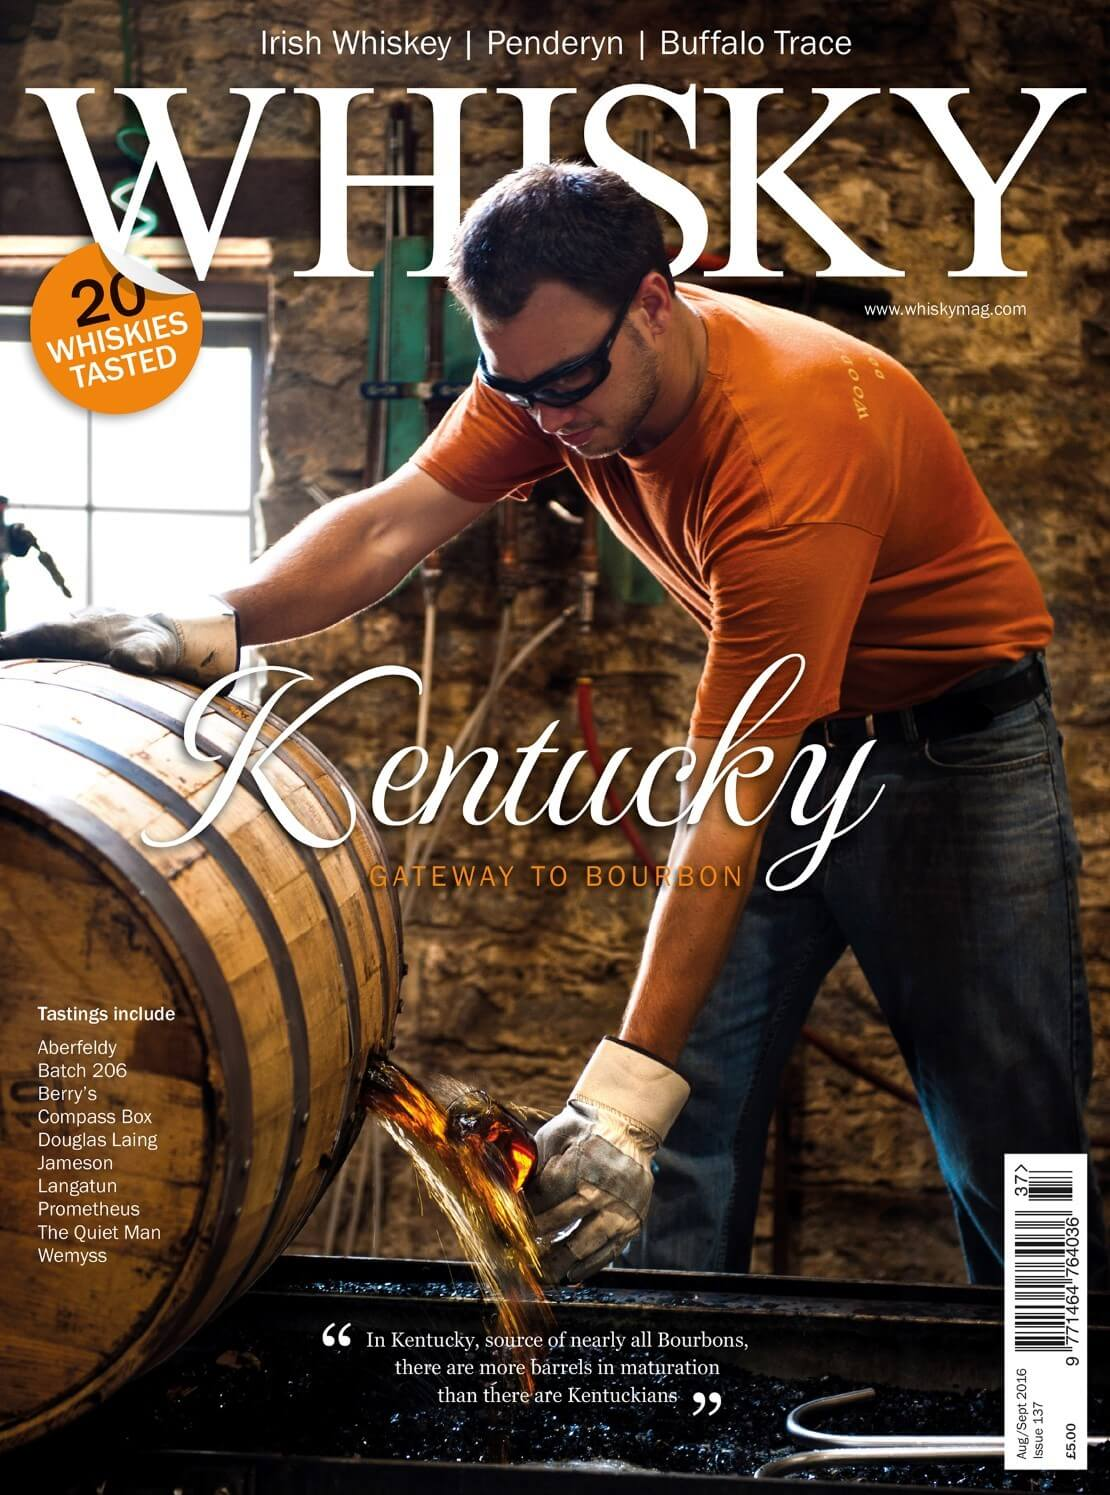 Irish whiskey Touring the Hebrides American whiskey supplement on Kentucky Bourbon